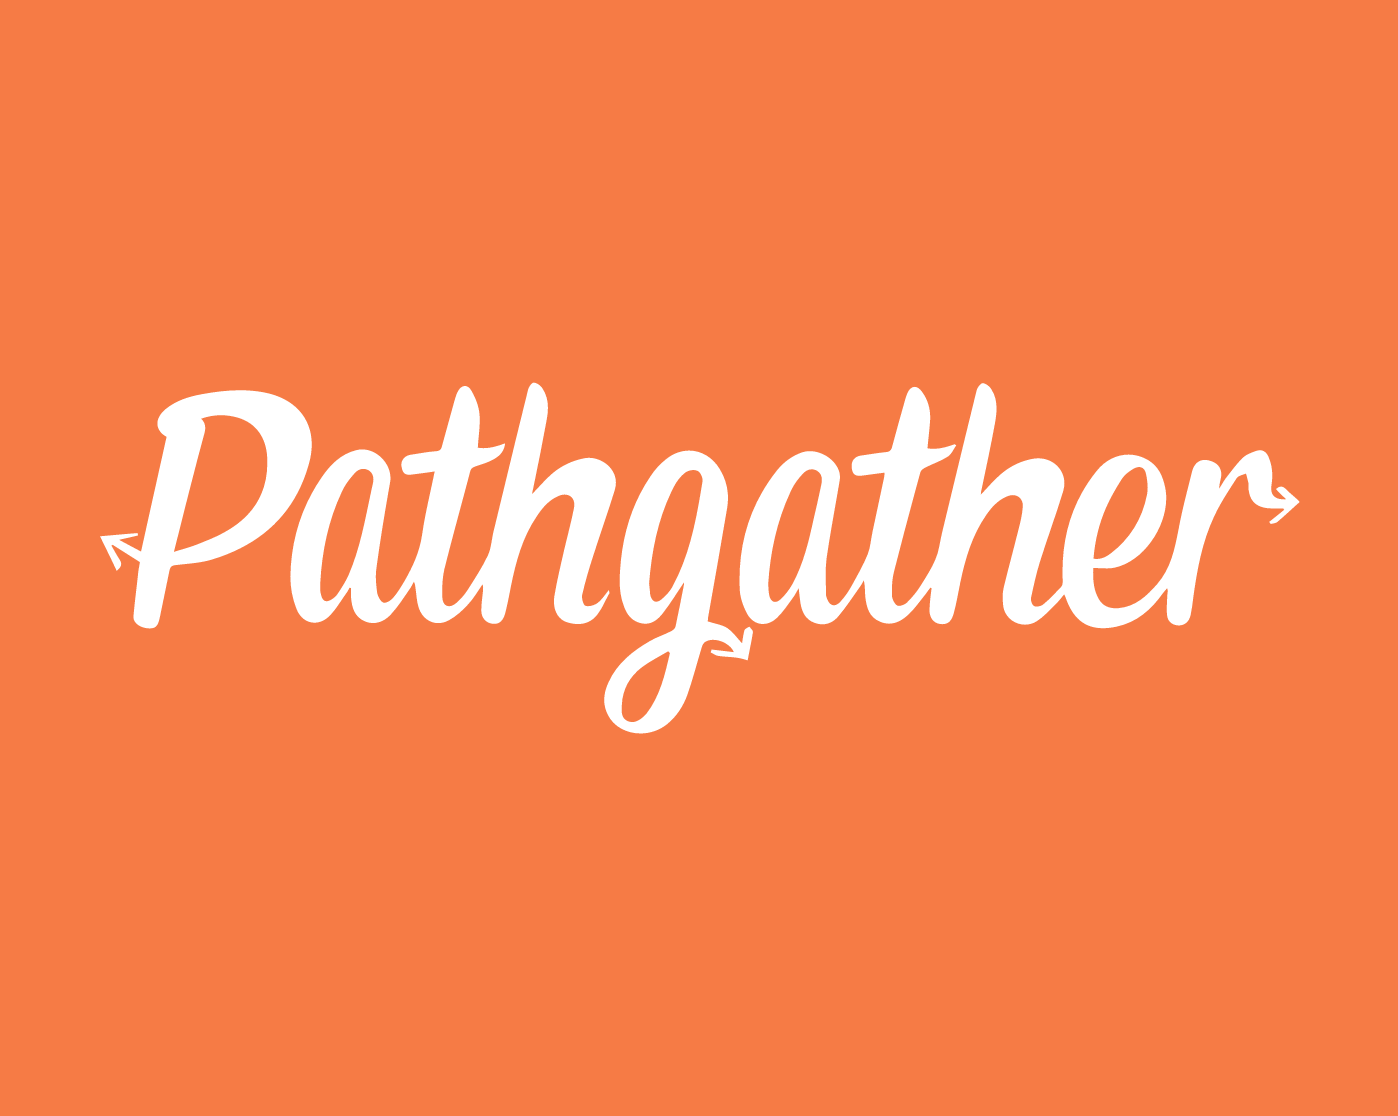 pathgather logo